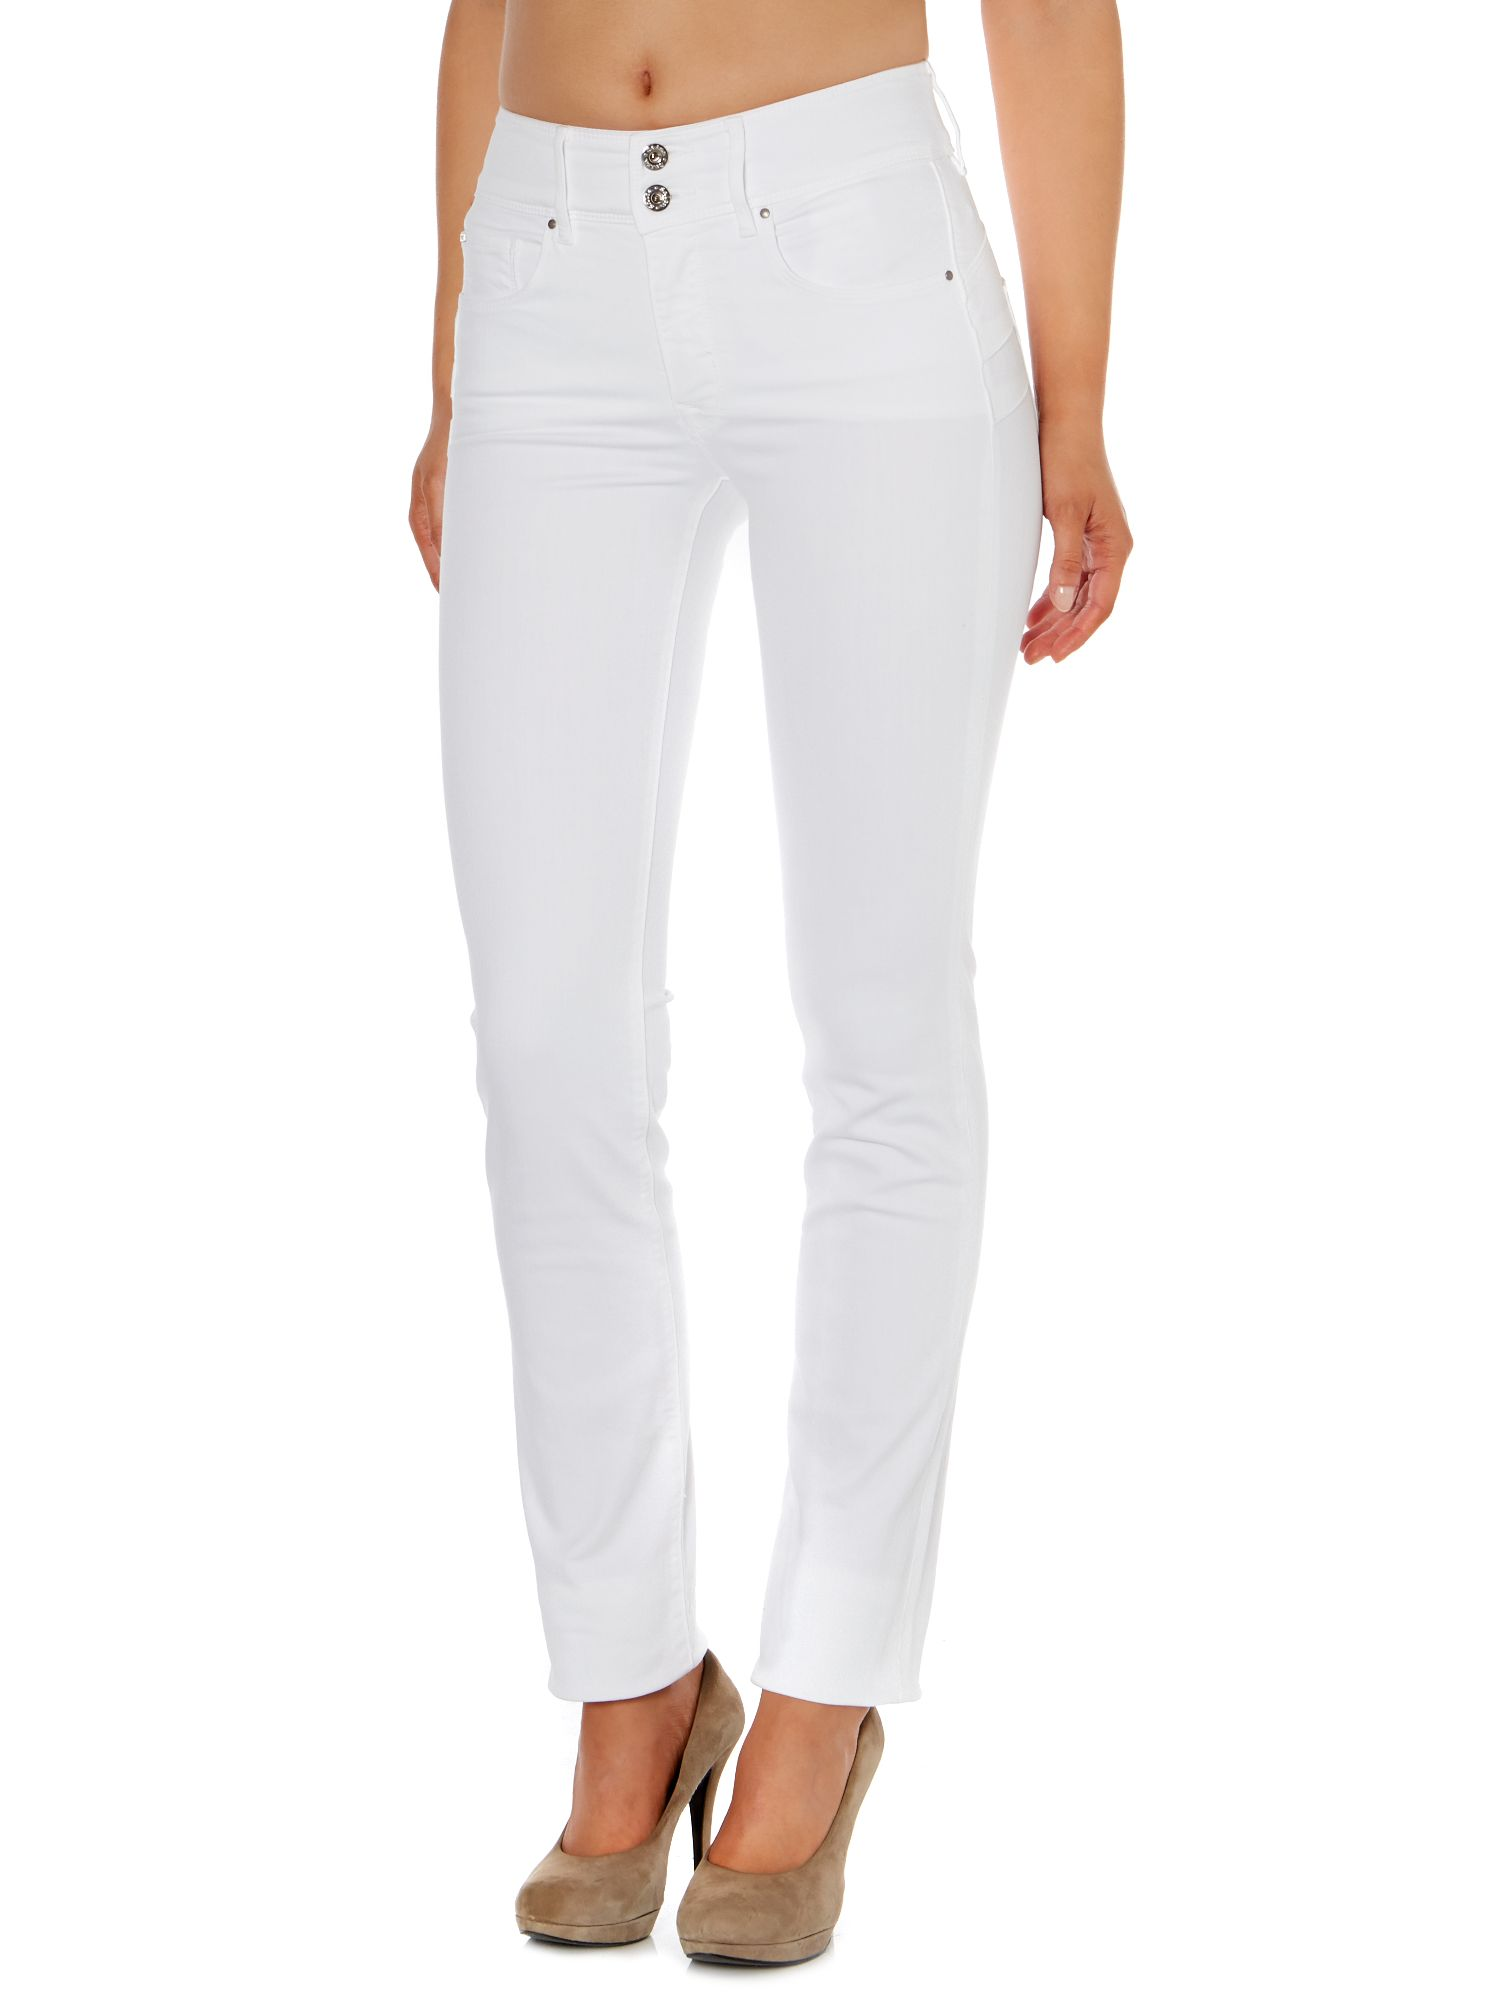 Secret Push-In slim leg jeans in White